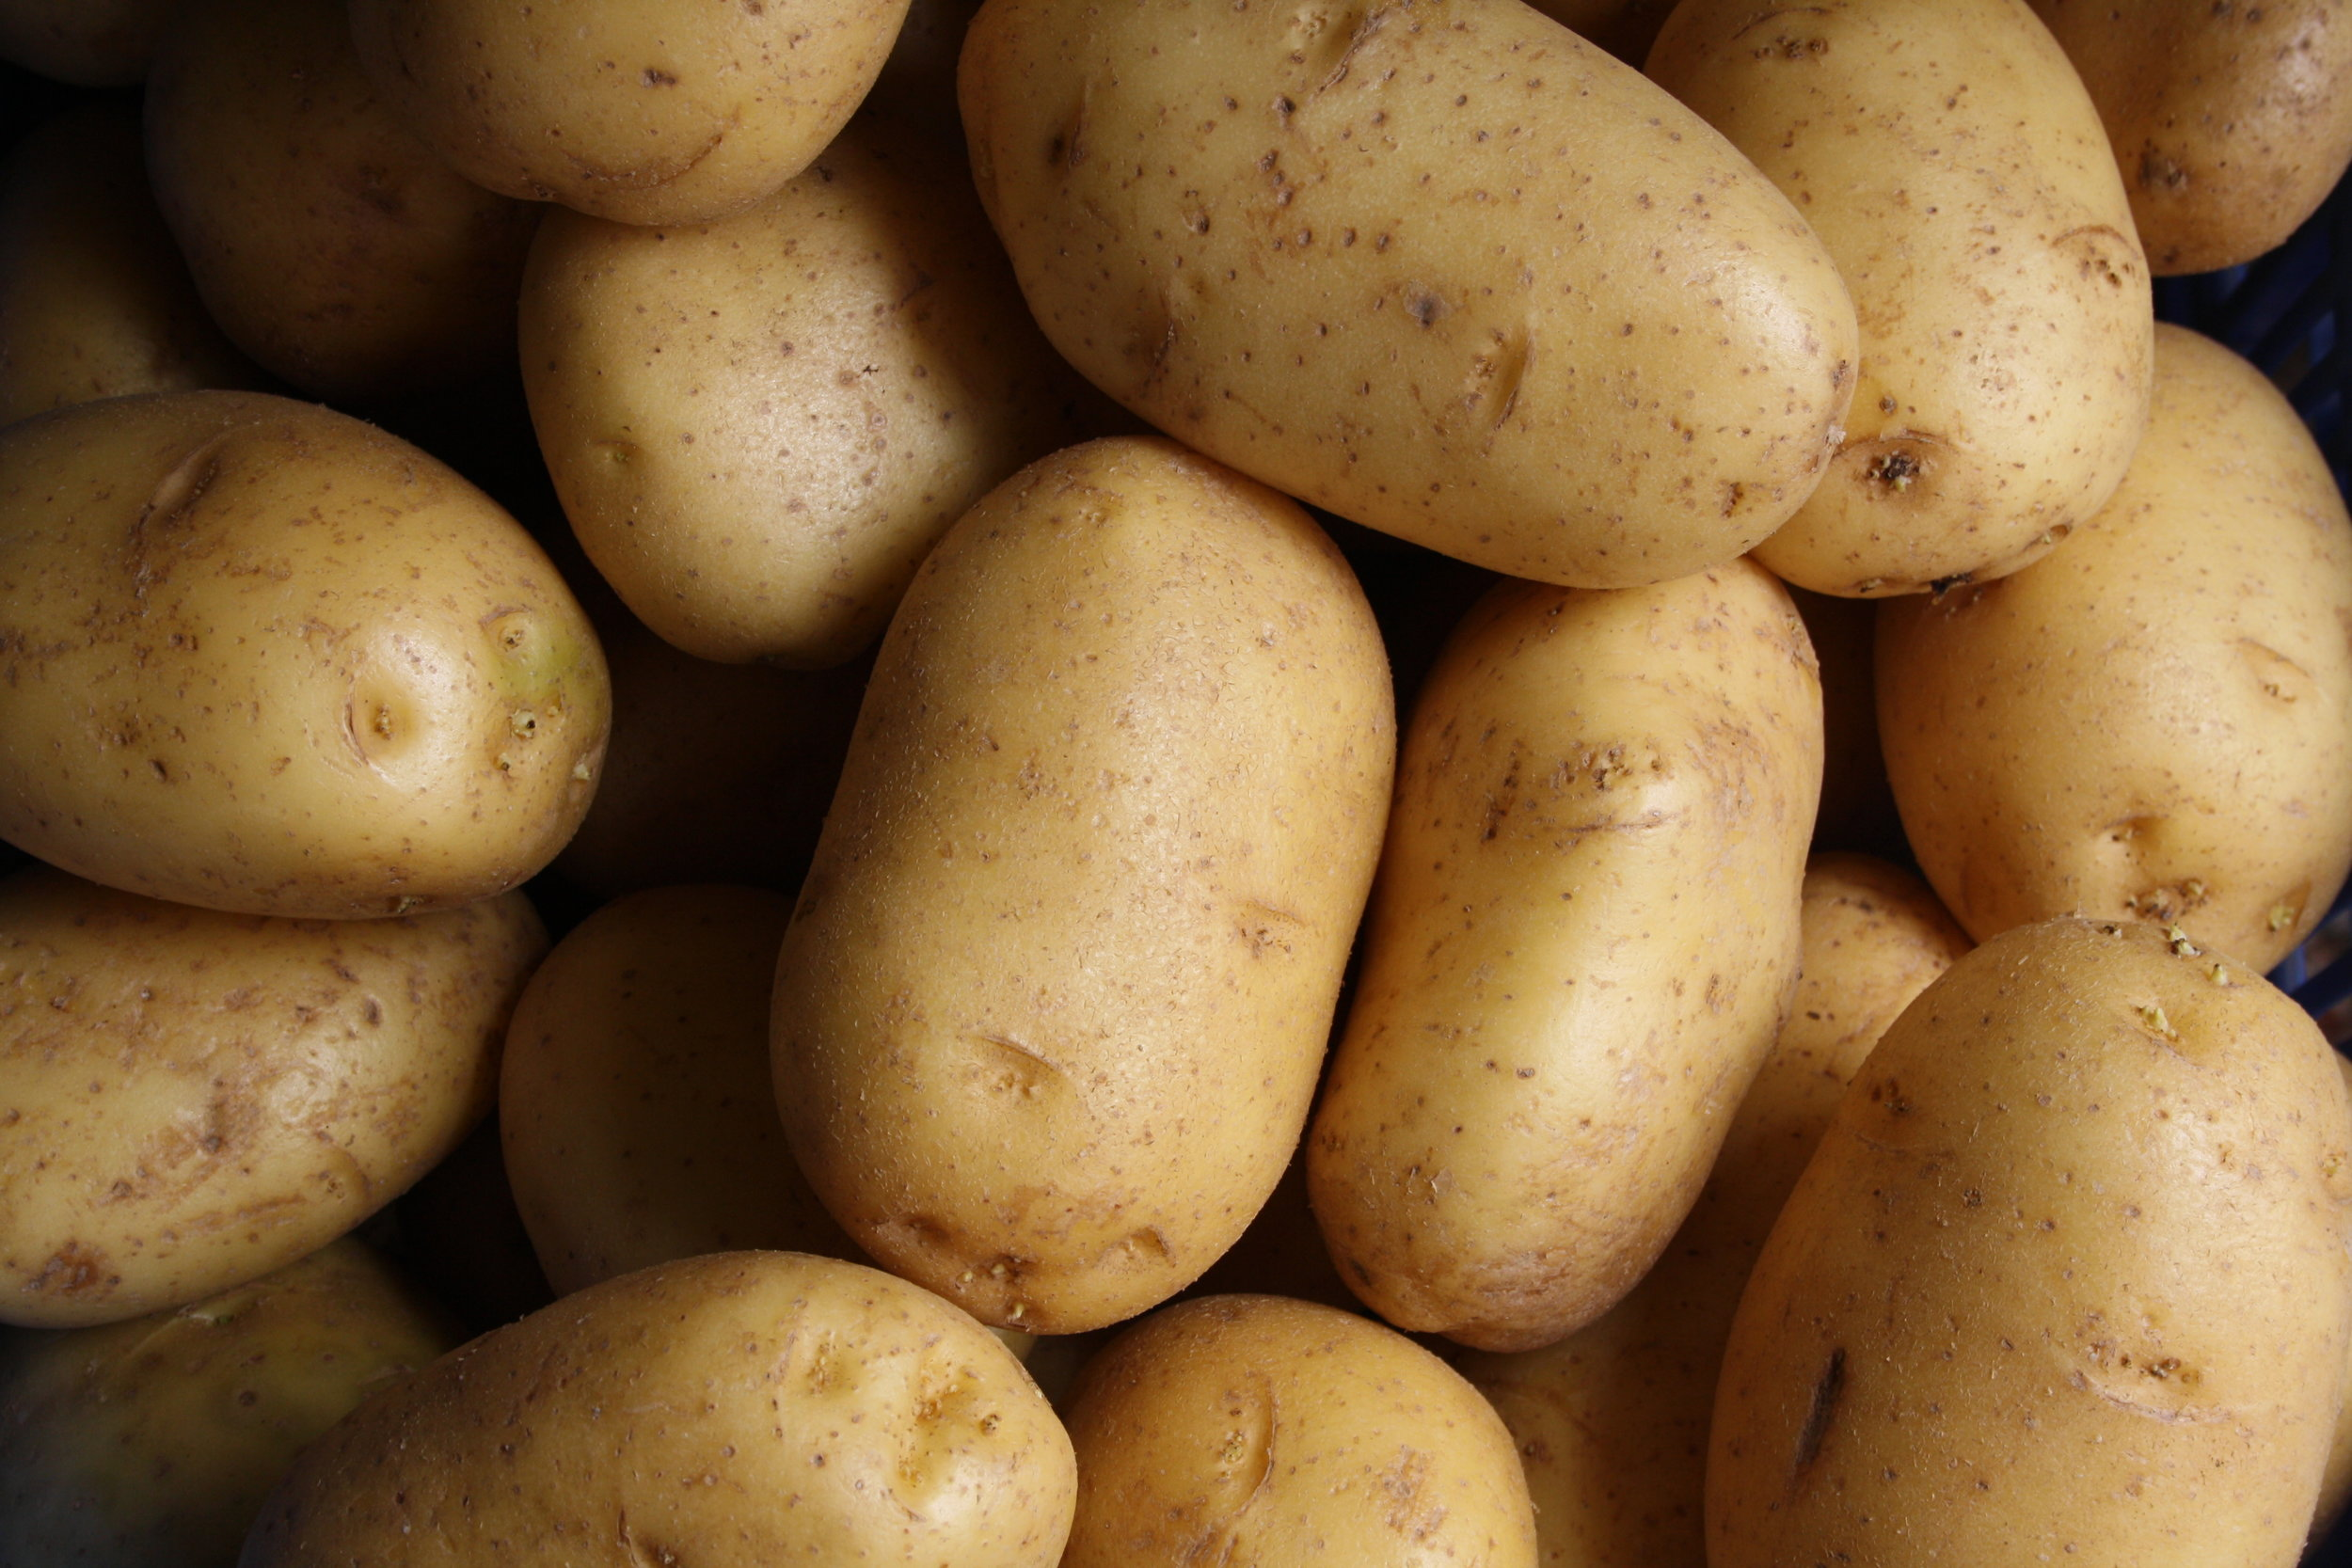 Russet Potatoes - The Potato You can find everywhere